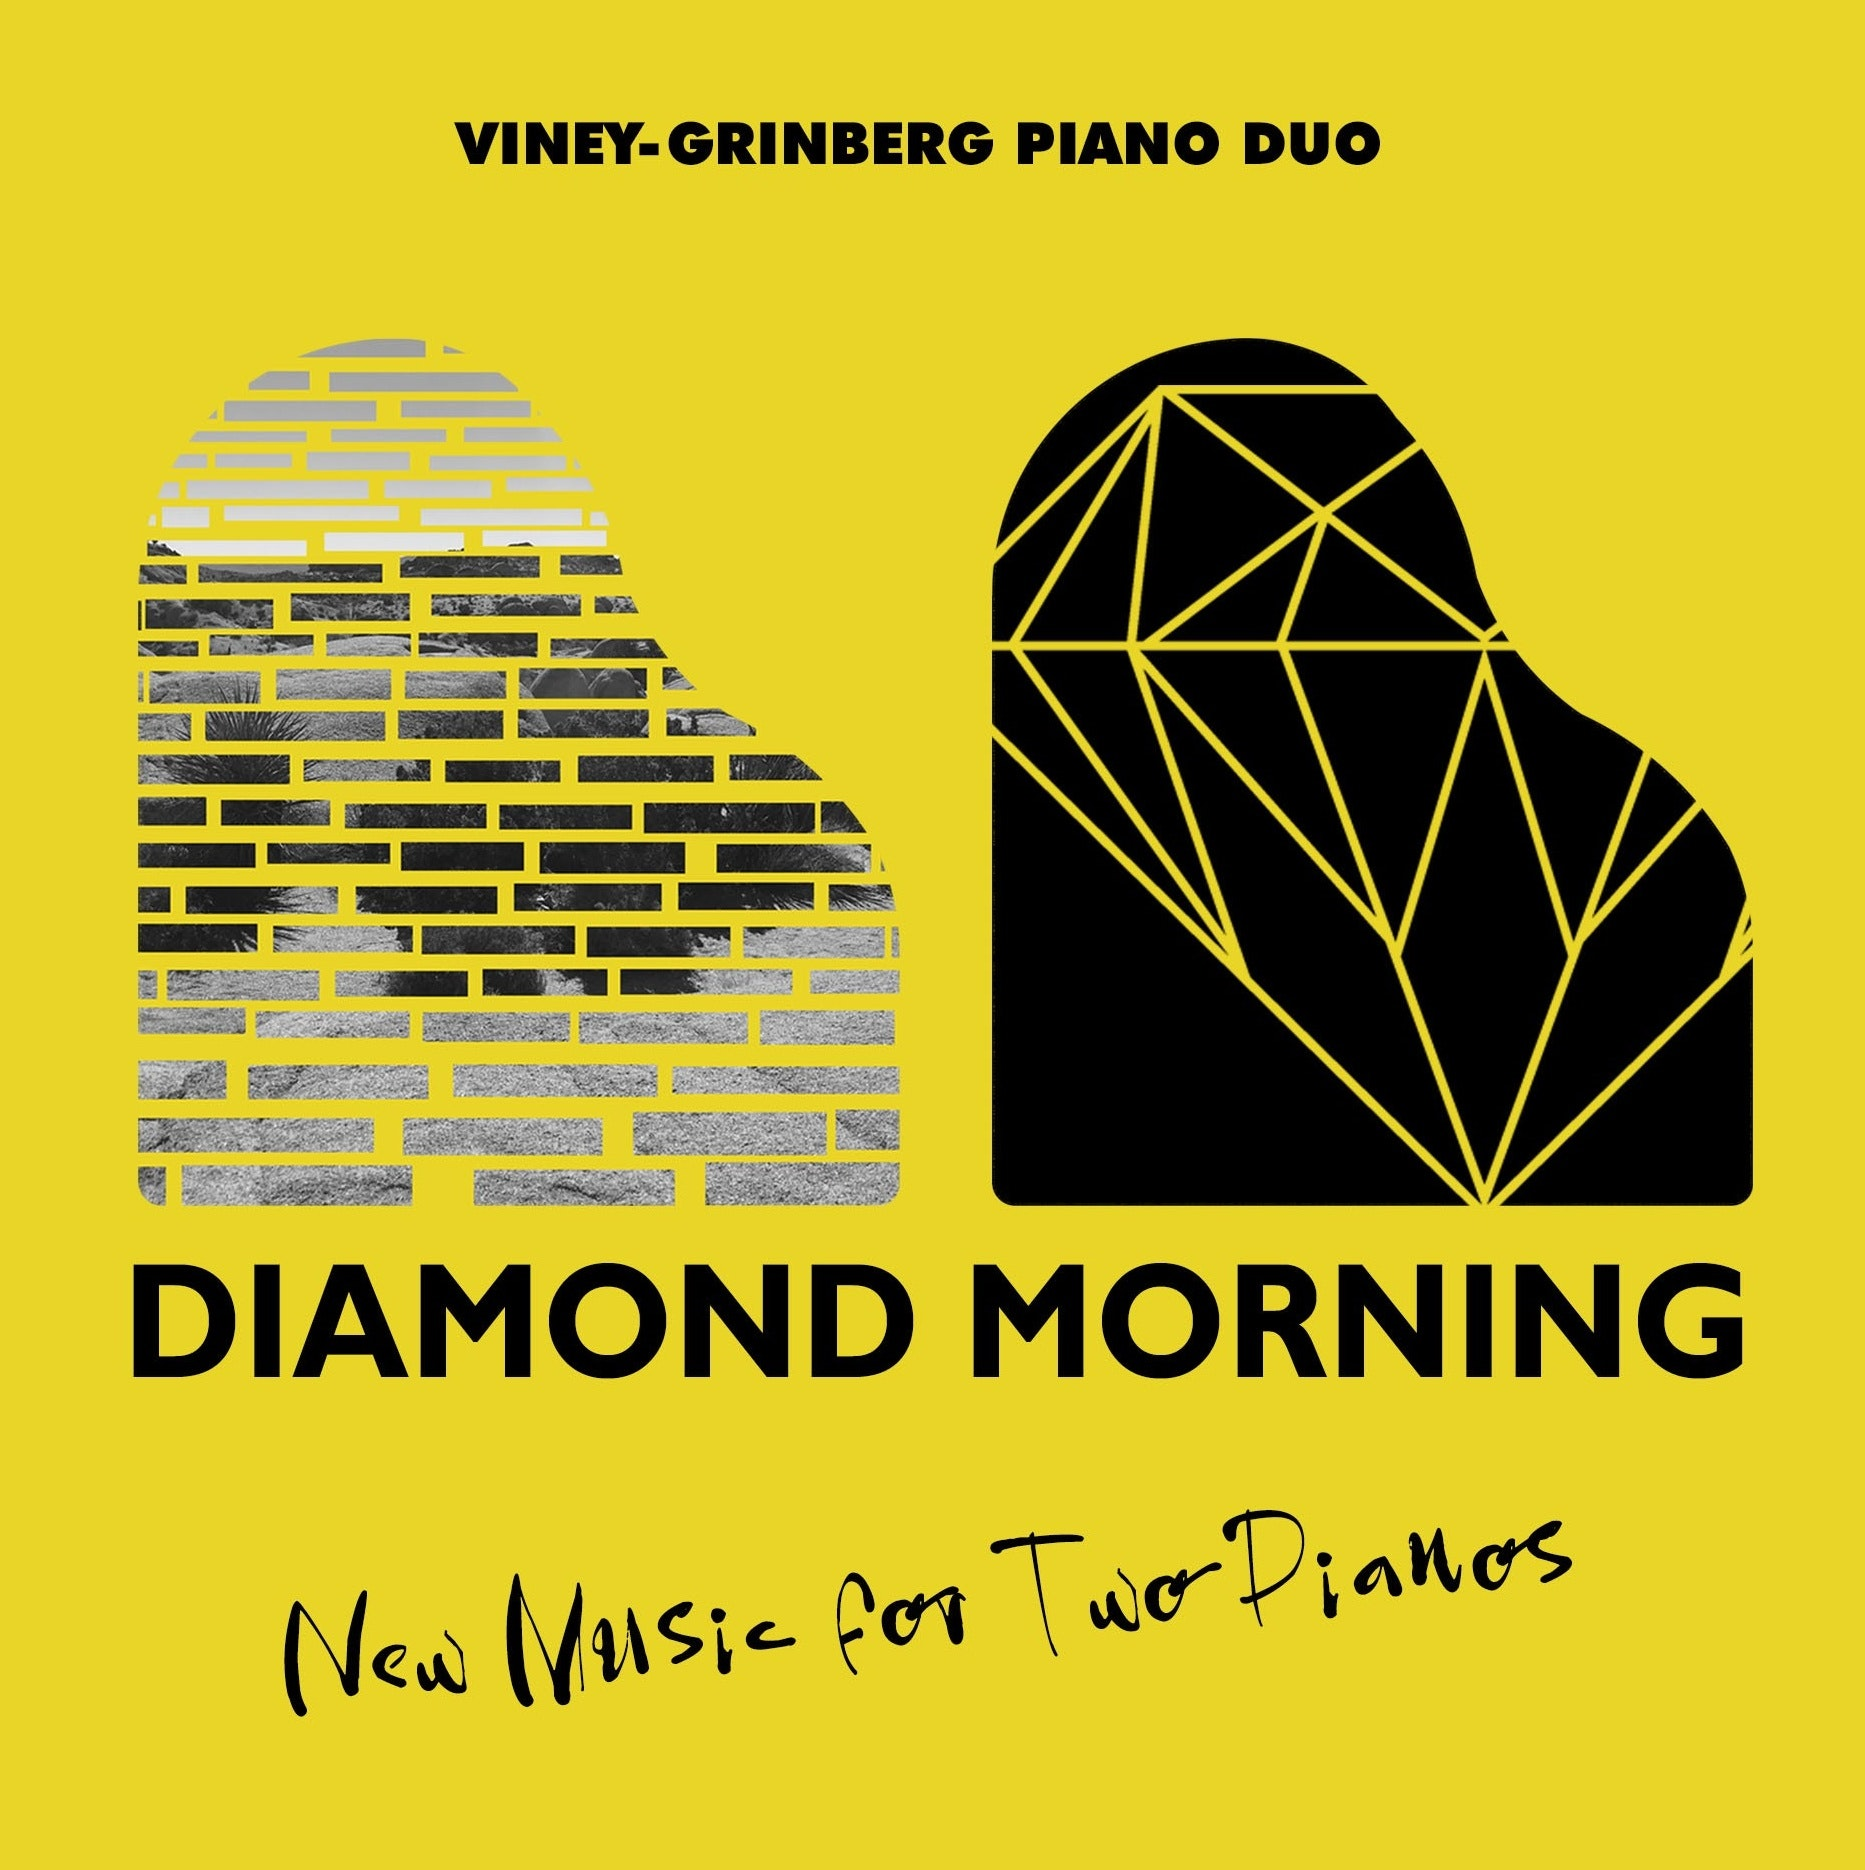 Diamond morning album cover design